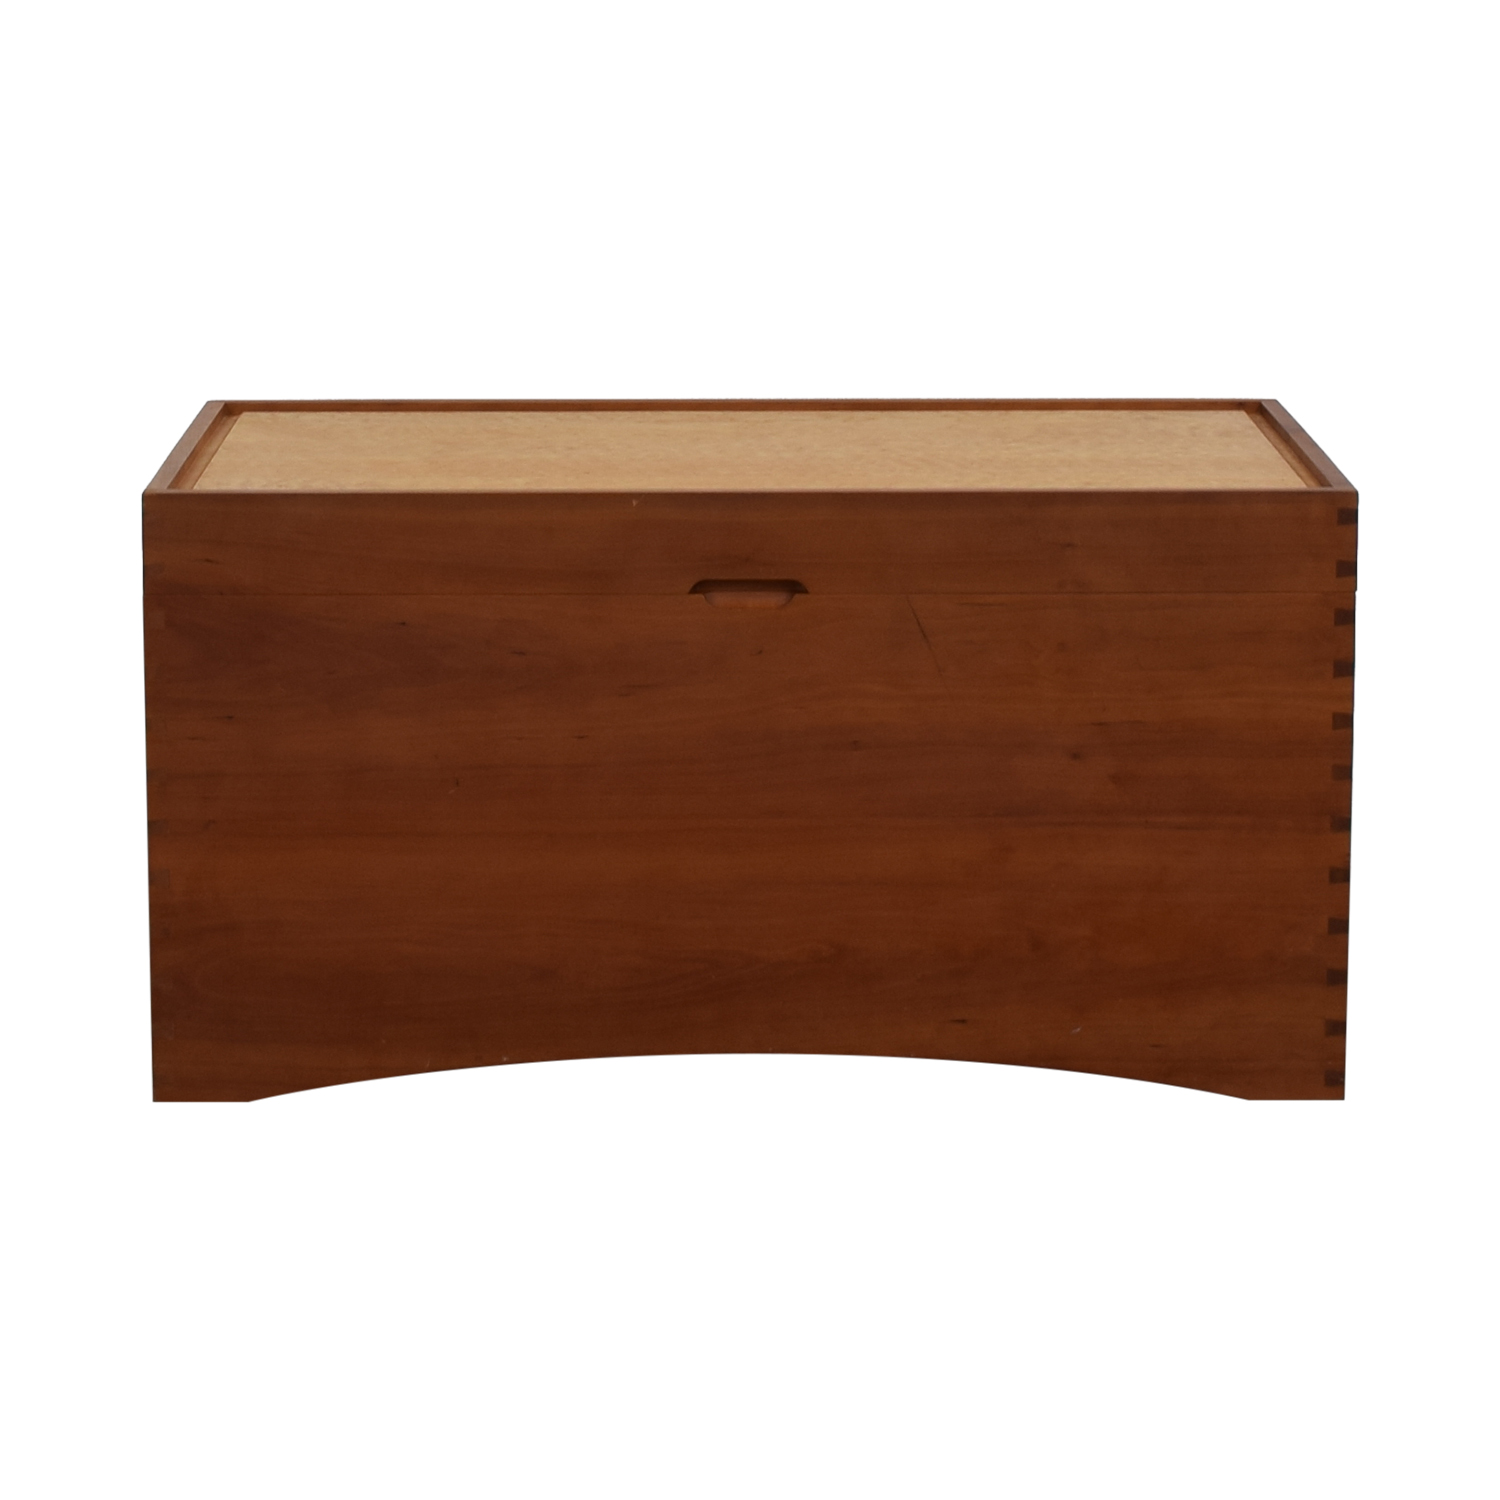 buy The Joinery The Joinery Custom Wood Hope Chest Trunk online